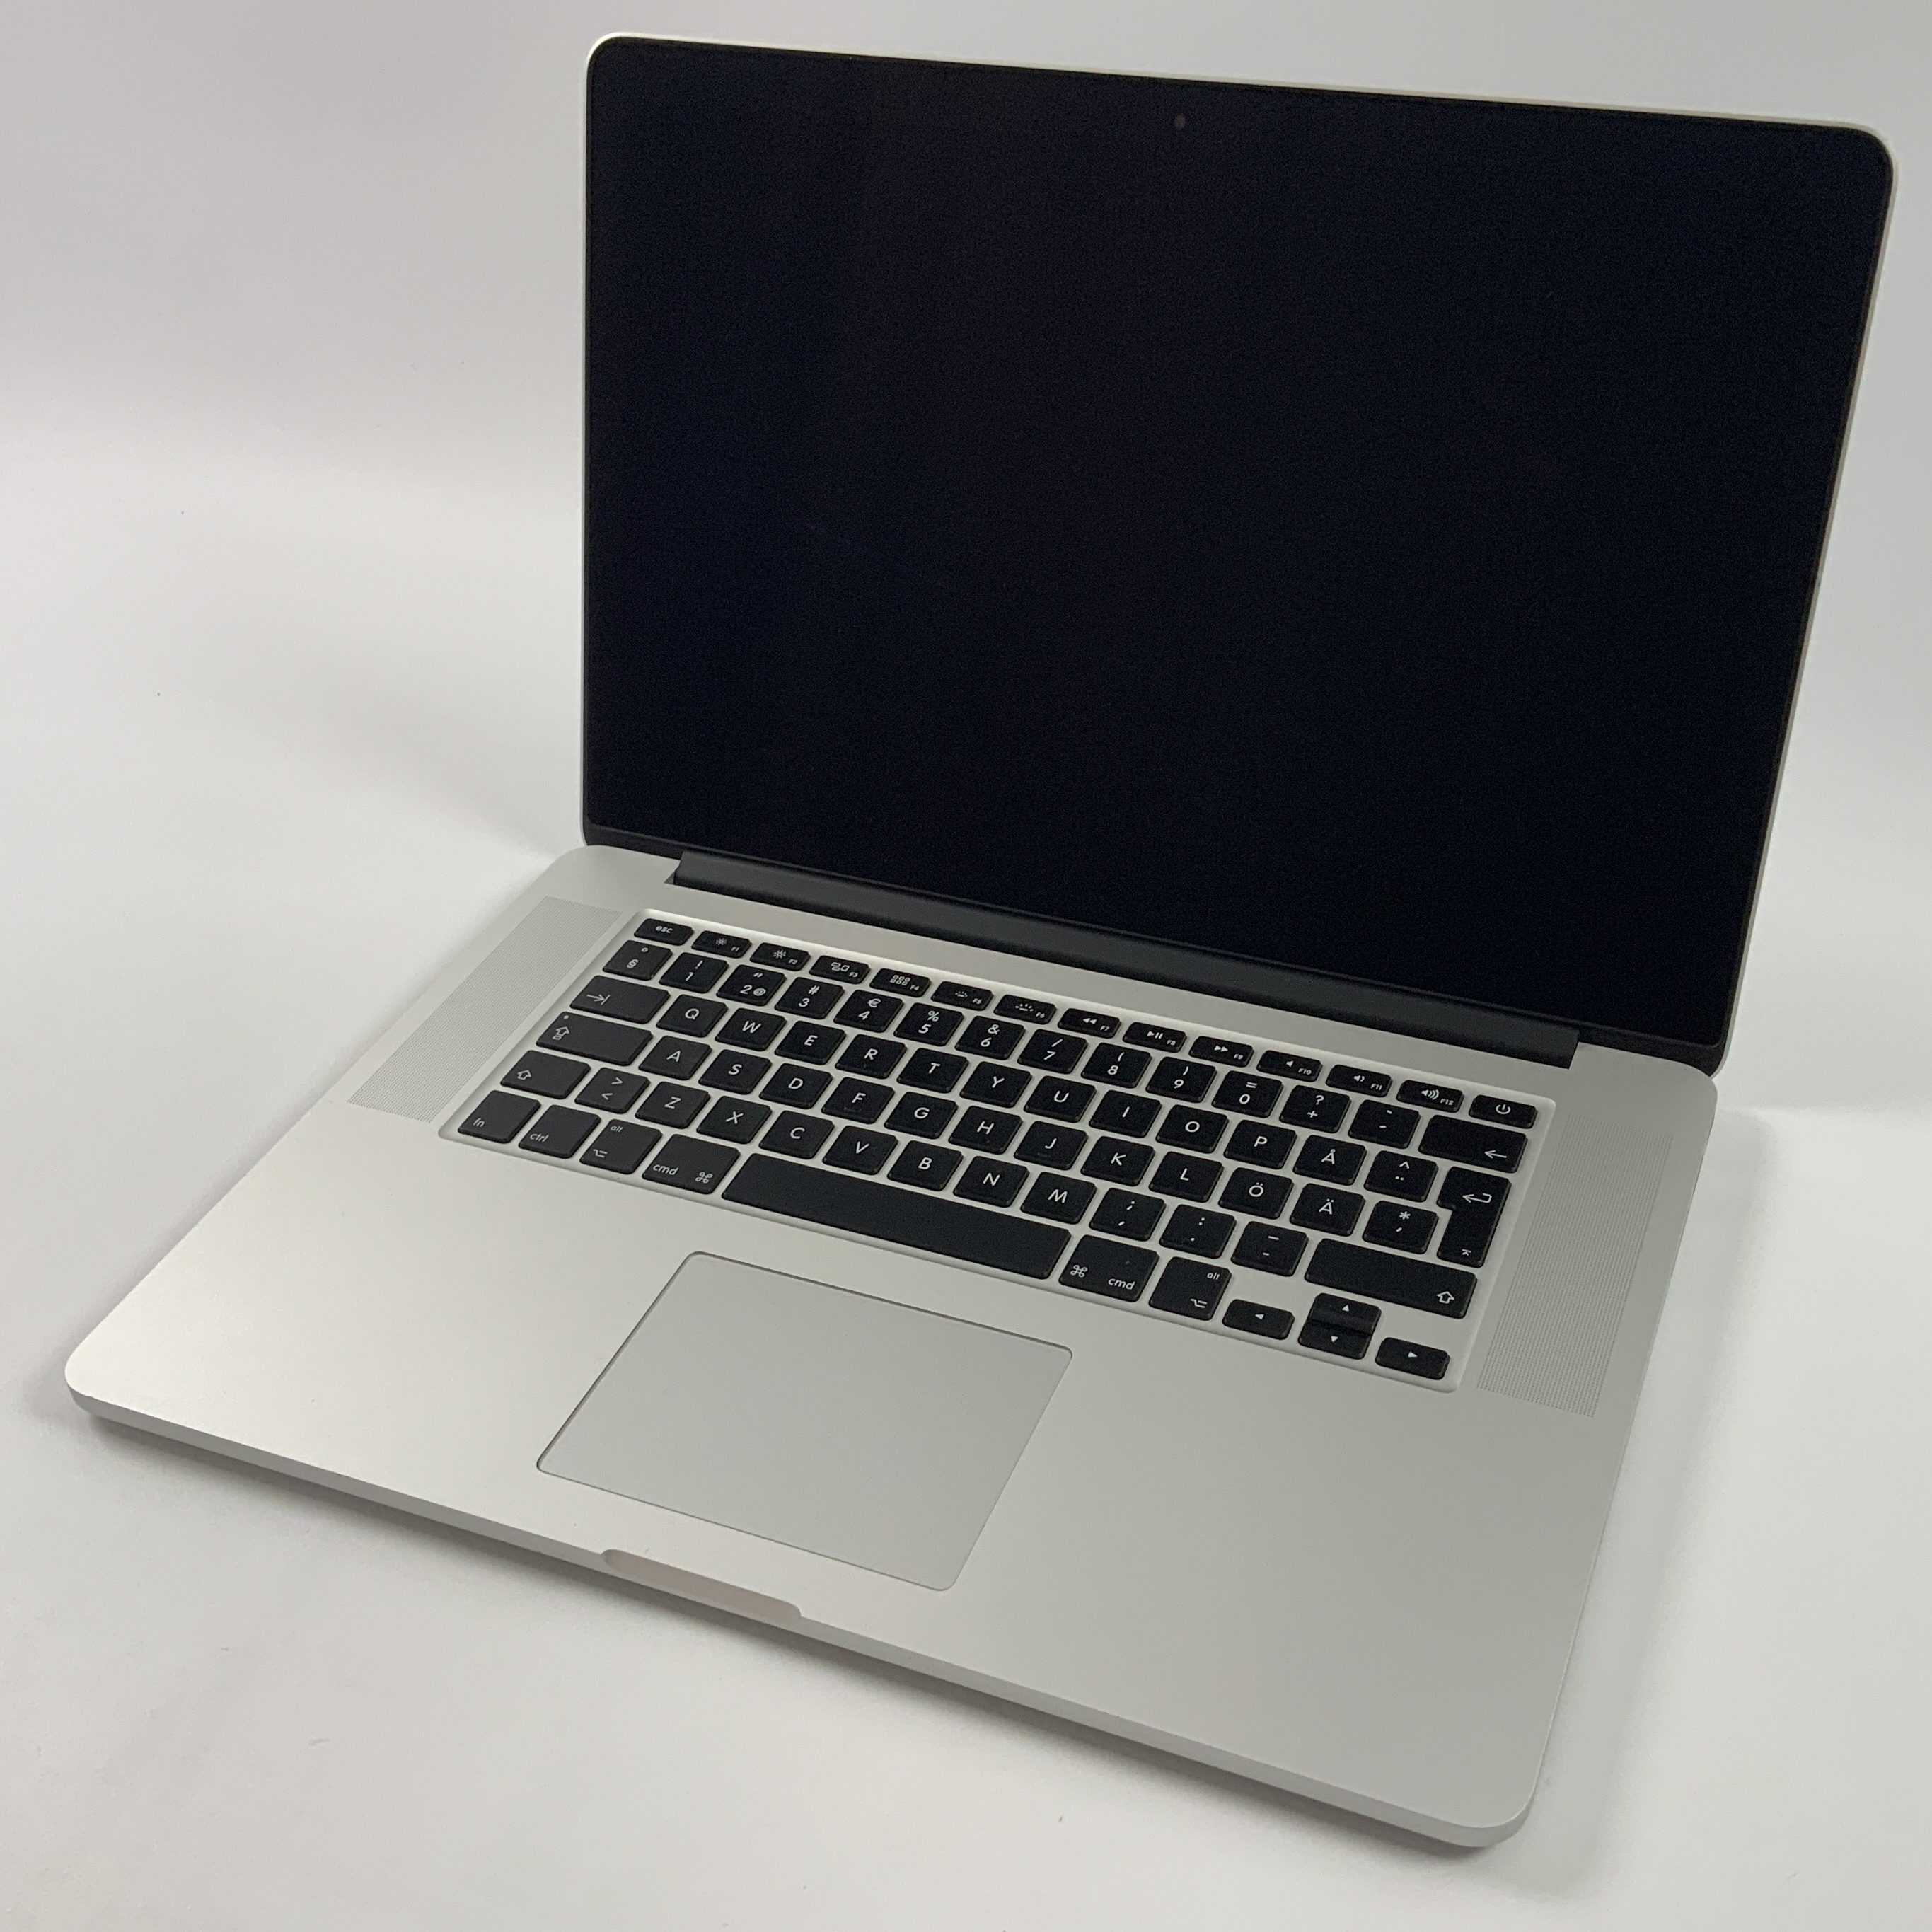 "MacBook Pro Retina 15"" Mid 2015 (Intel Quad-Core i7 2.2 GHz 16 GB RAM 256 GB SSD), Intel Quad-Core i7 2.2 GHz, 16 GB RAM, 256 GB SSD, image 1"